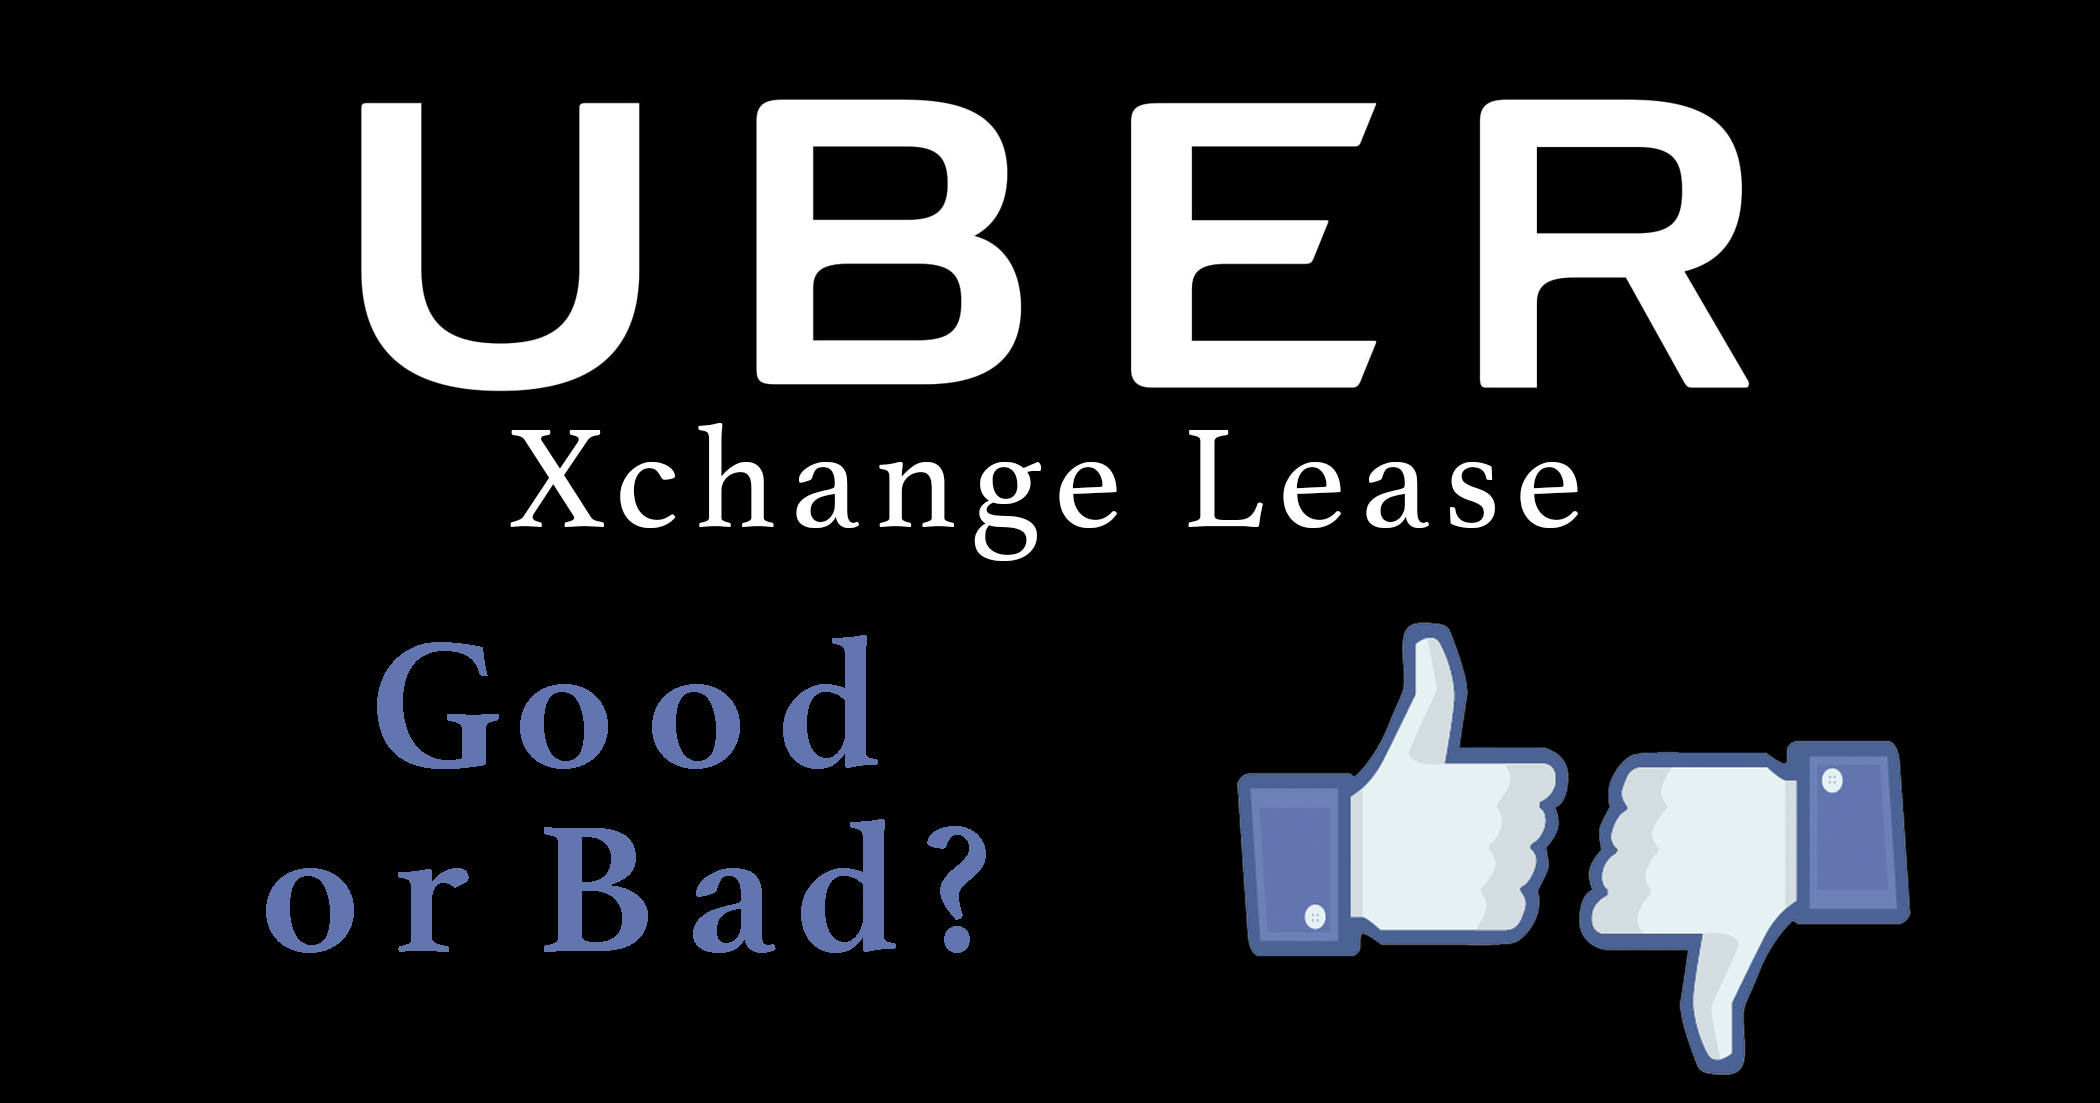 Leasing A Car Through Uber >> Uber Xchange Leasing: How to Get a New Car With No Credit, No Downpayment and No Yearly Contract.